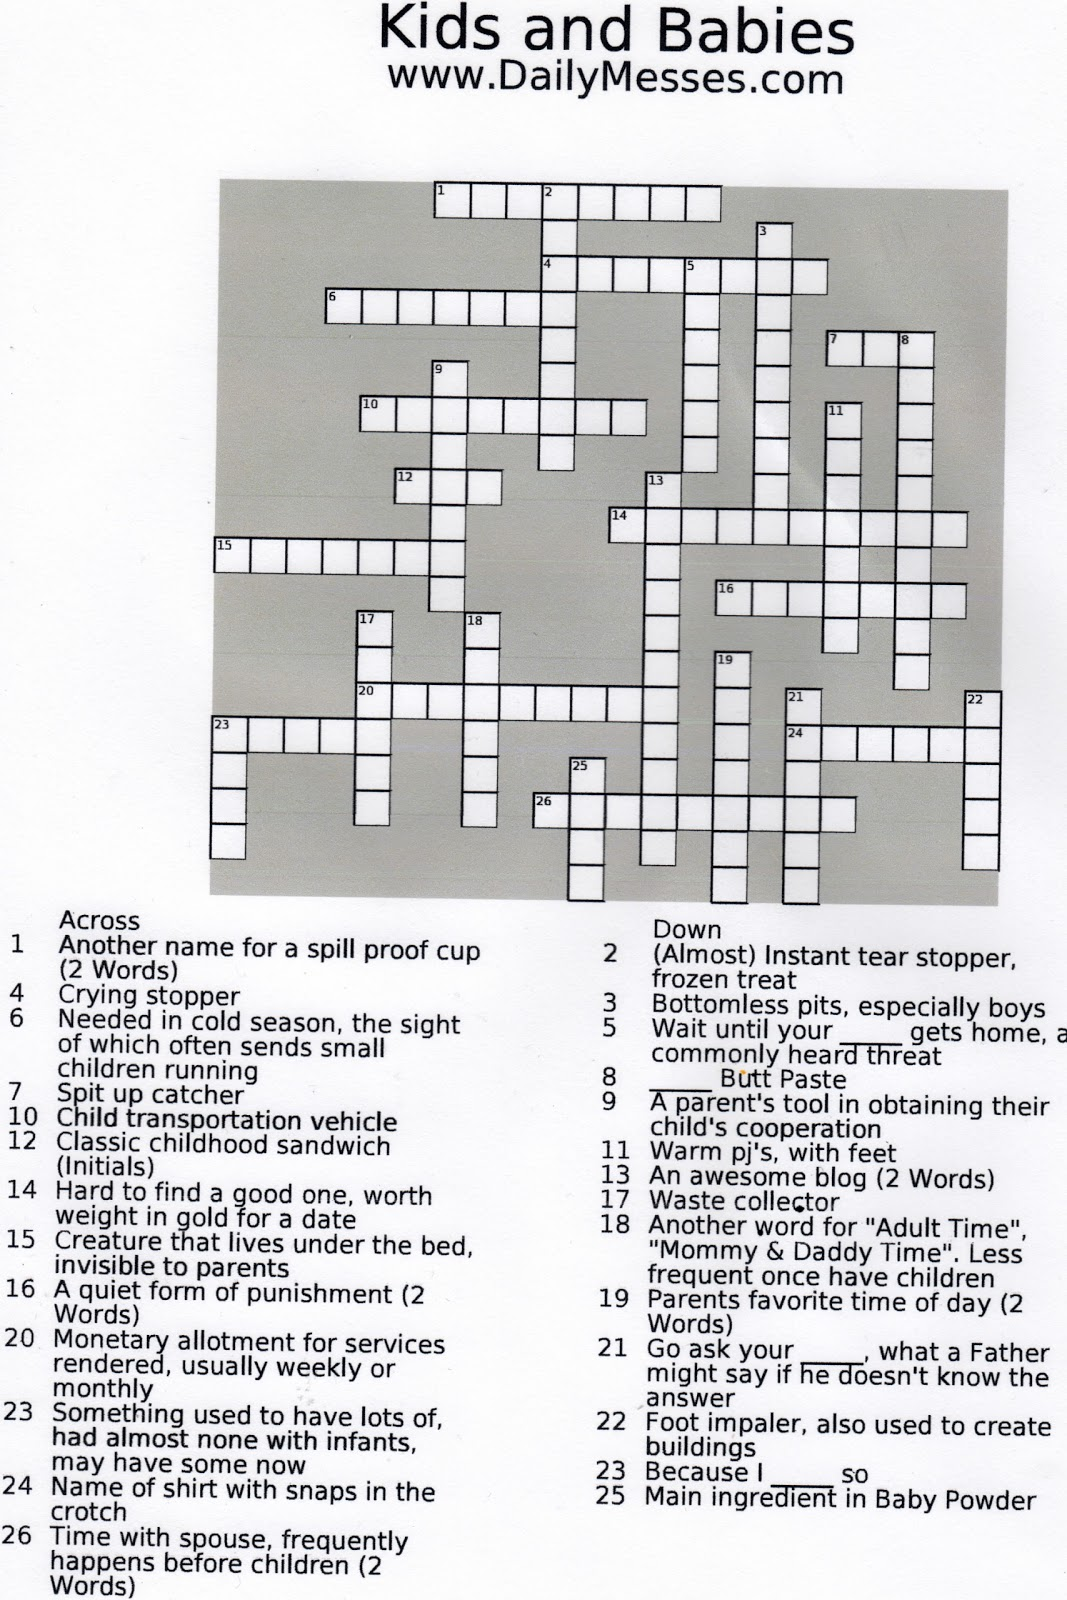 Daily Messes Kids And Babies Crossword Puzzle